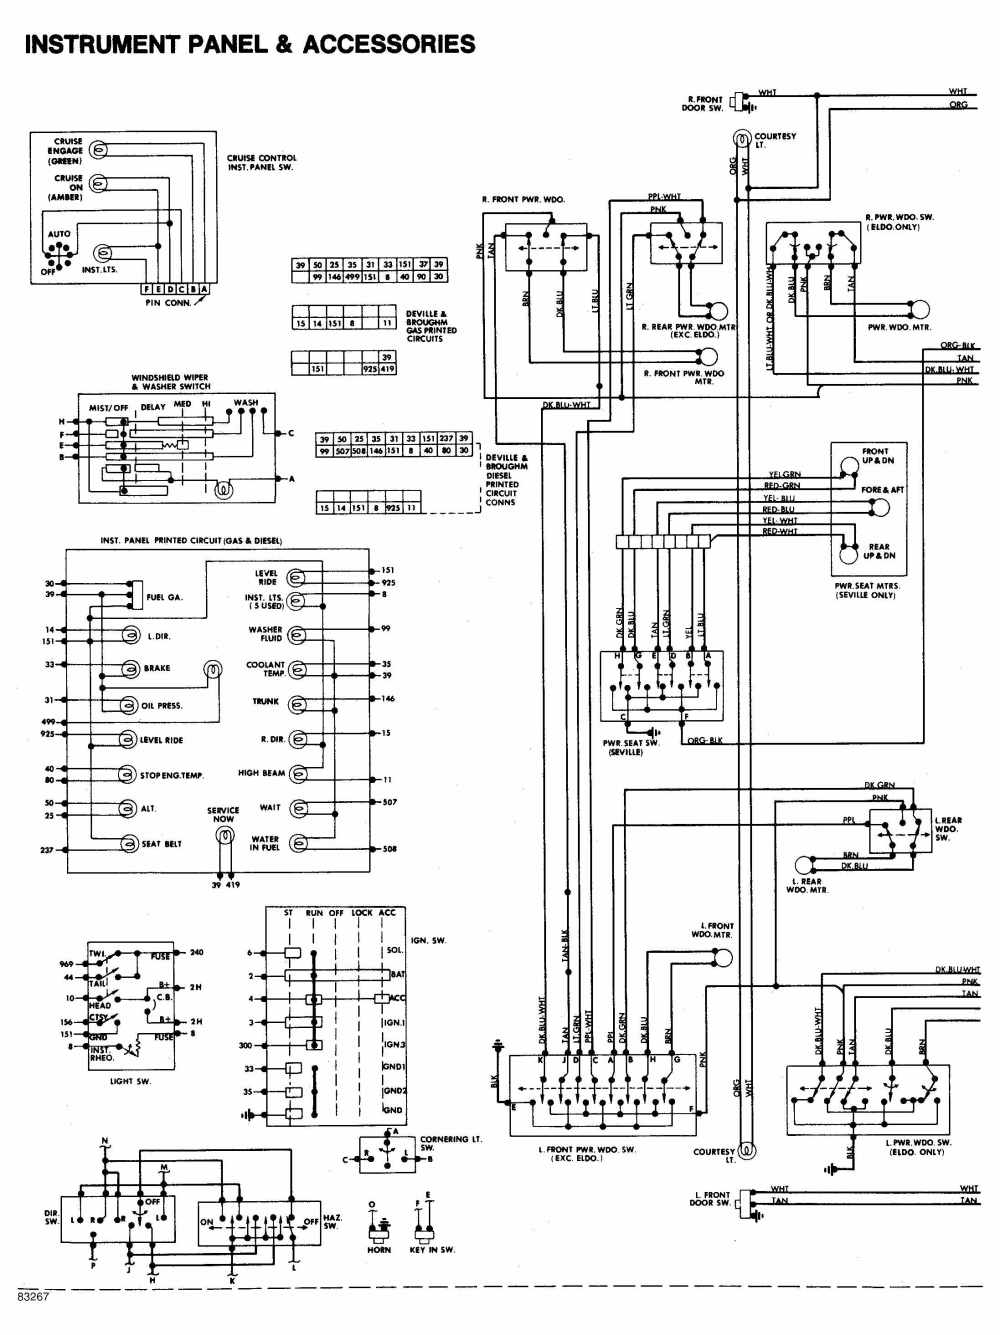 medium resolution of 1984 cadillac deville instrument panel and accessories wiring diagram drawing a